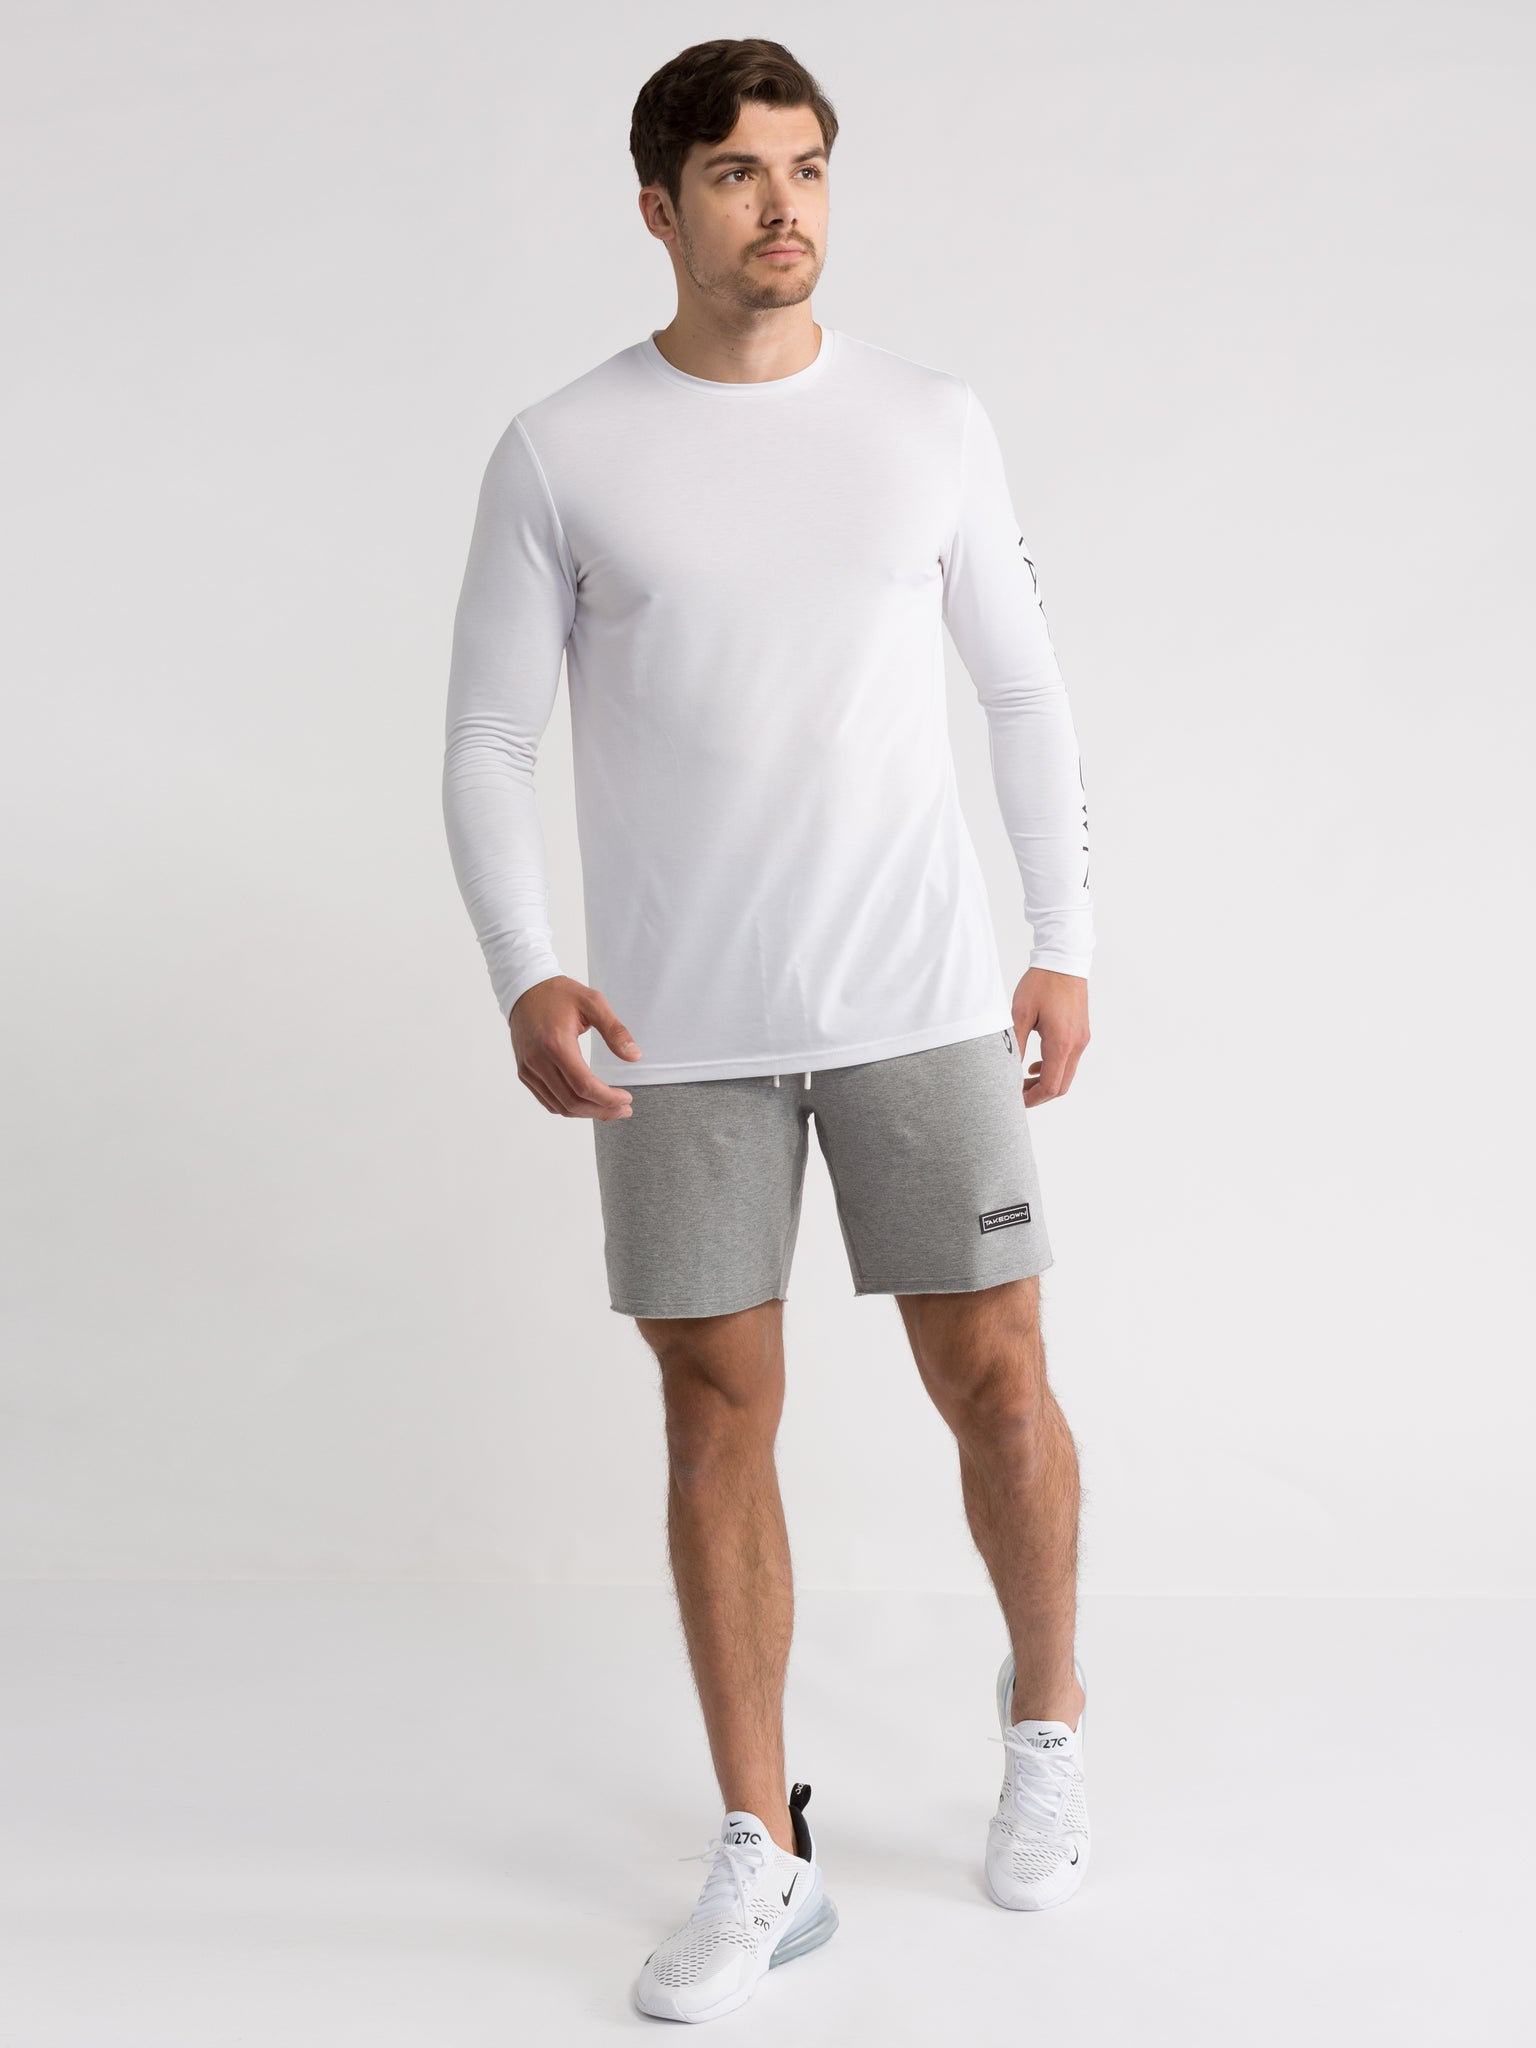 mens long sleeve white tee